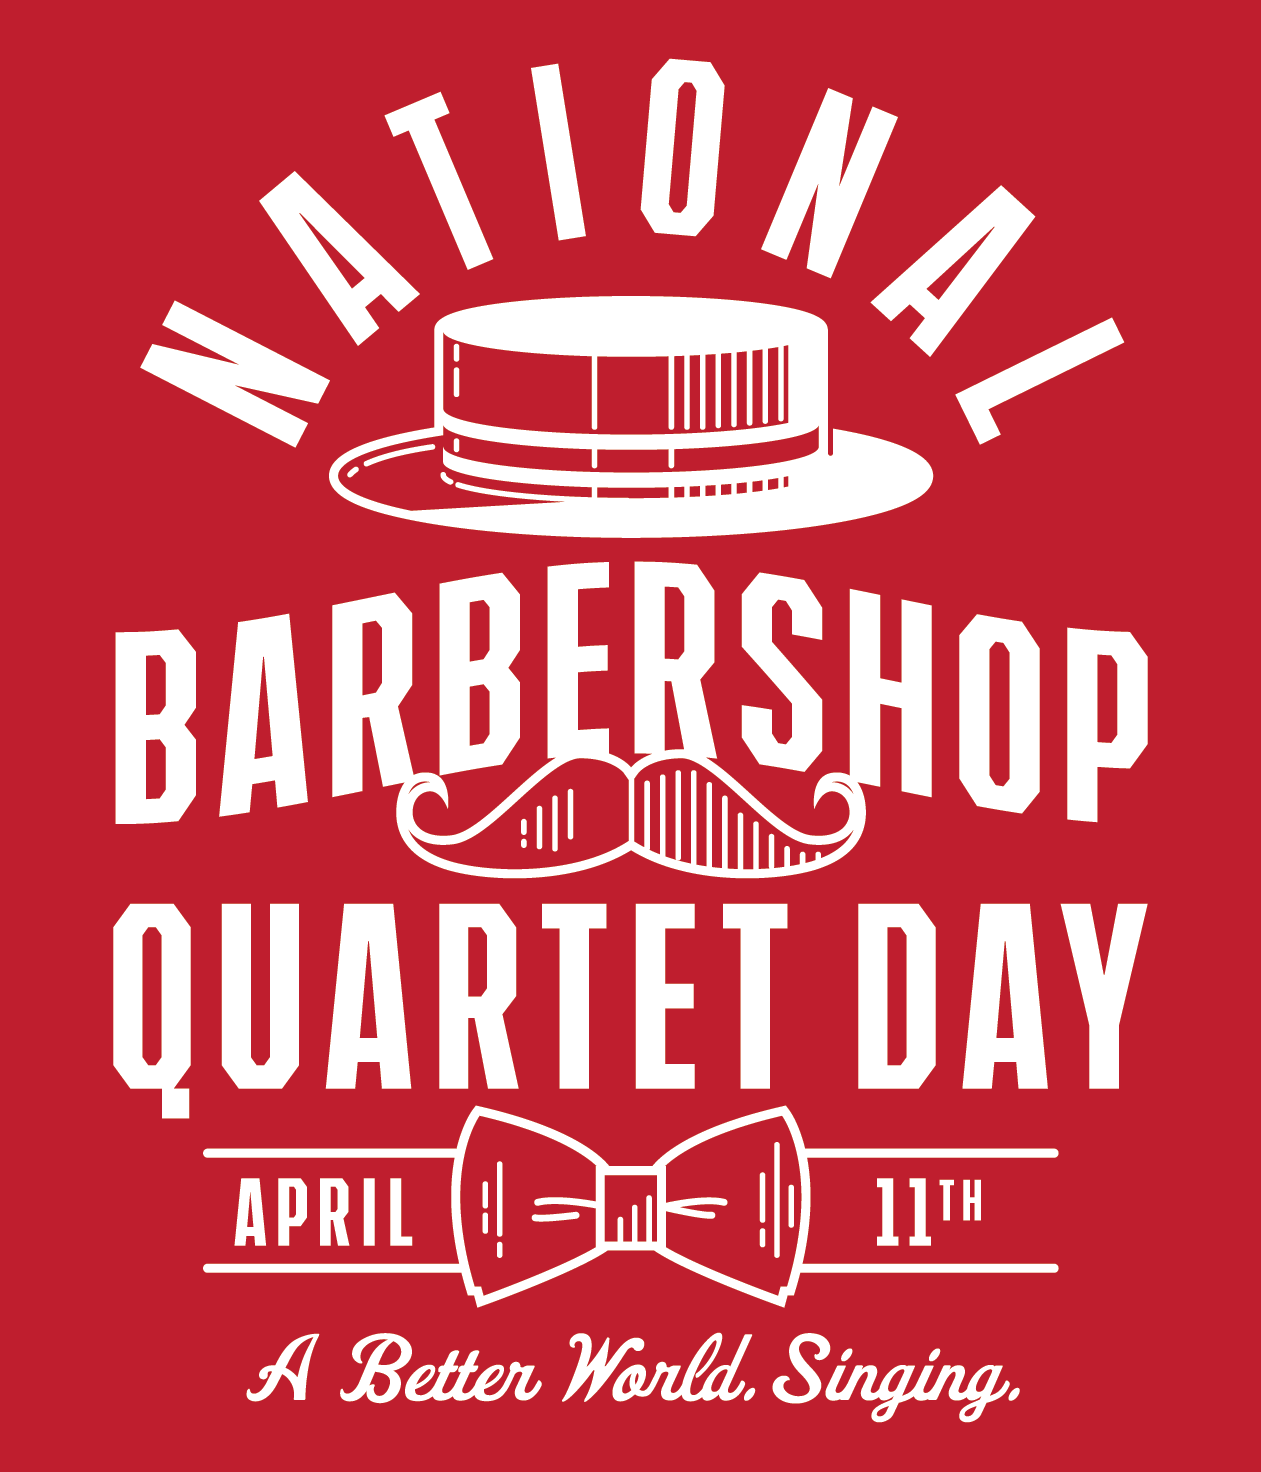 Barbershop Quartet Day